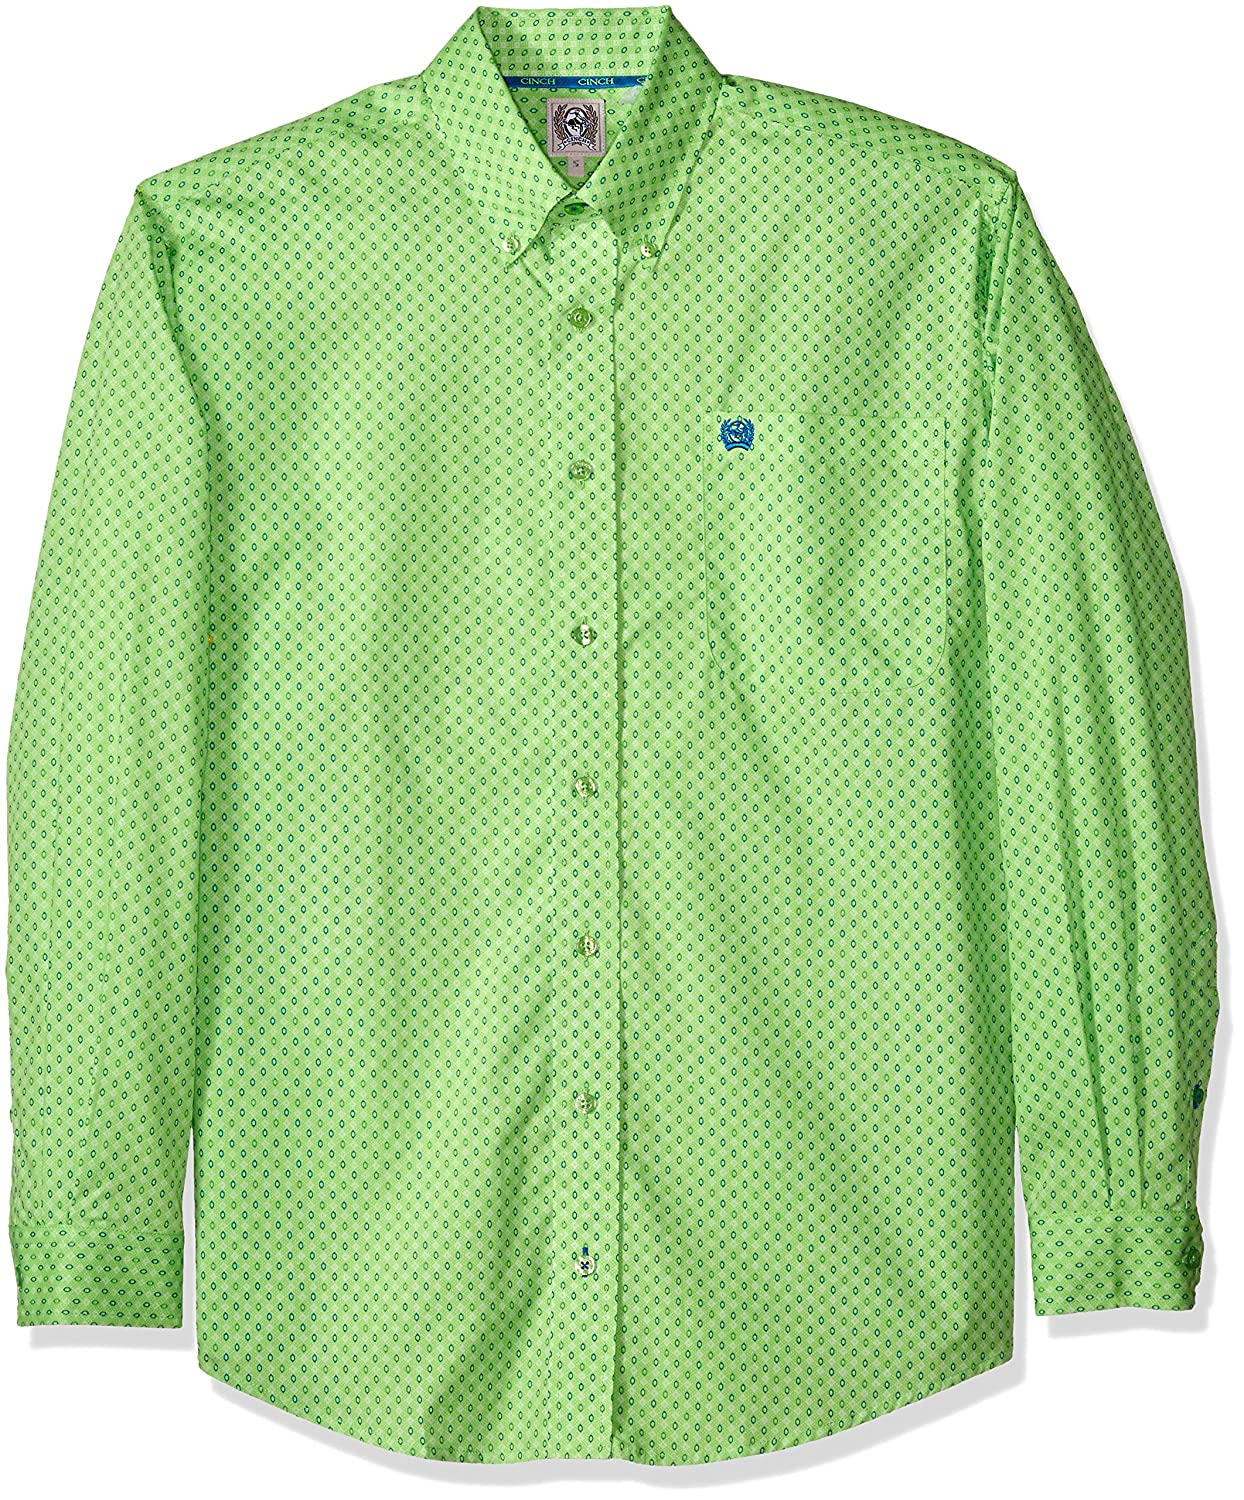 Cinch Mens Classic Fit Long Sleeve Button One Open Pocket Print Shirt